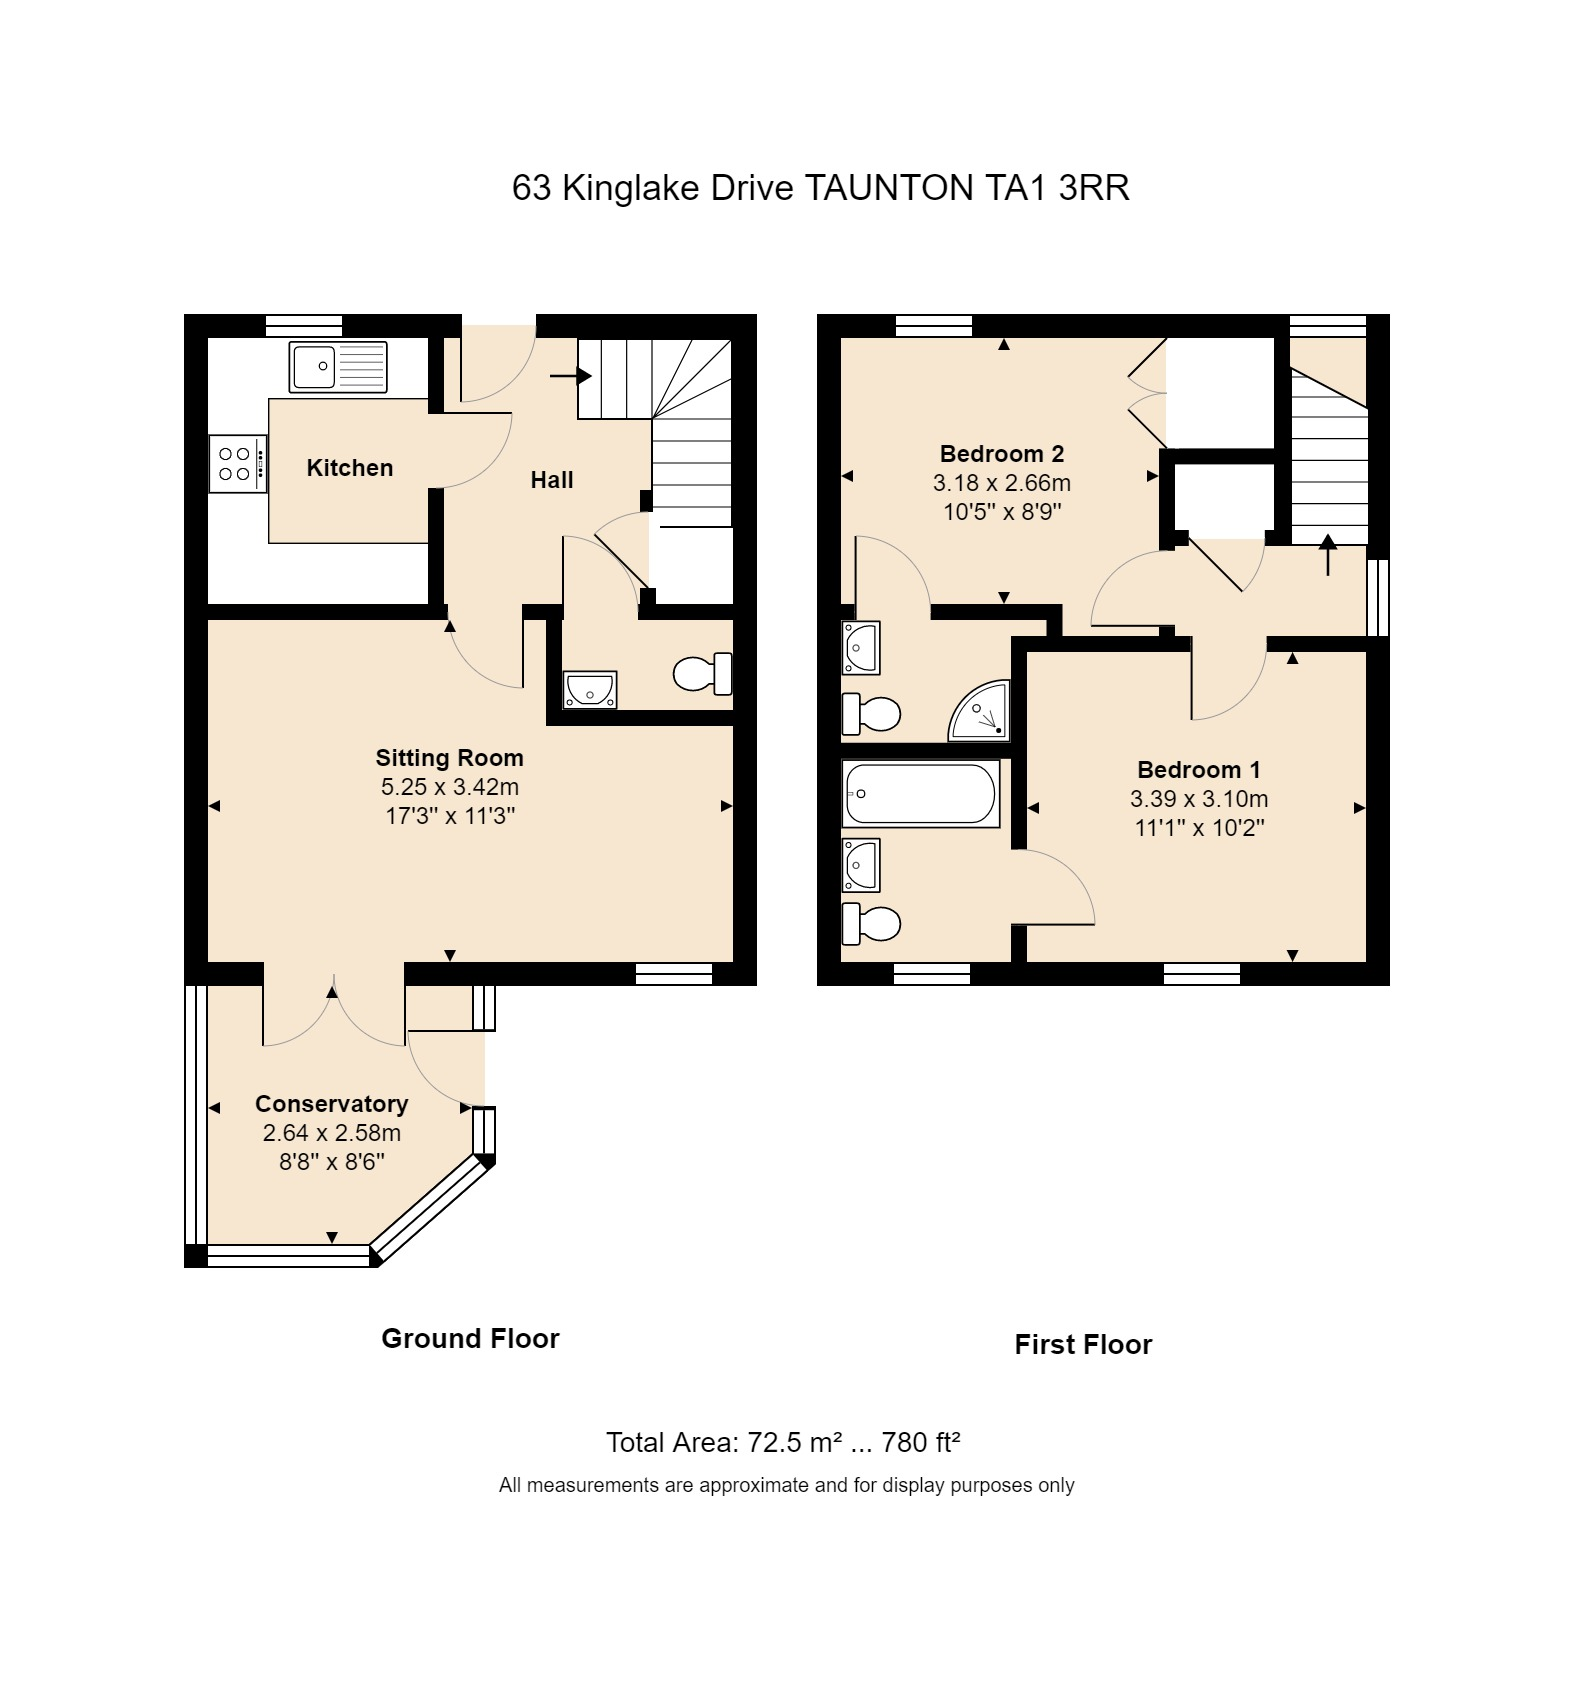 63 Kinglake Drive Floorplan